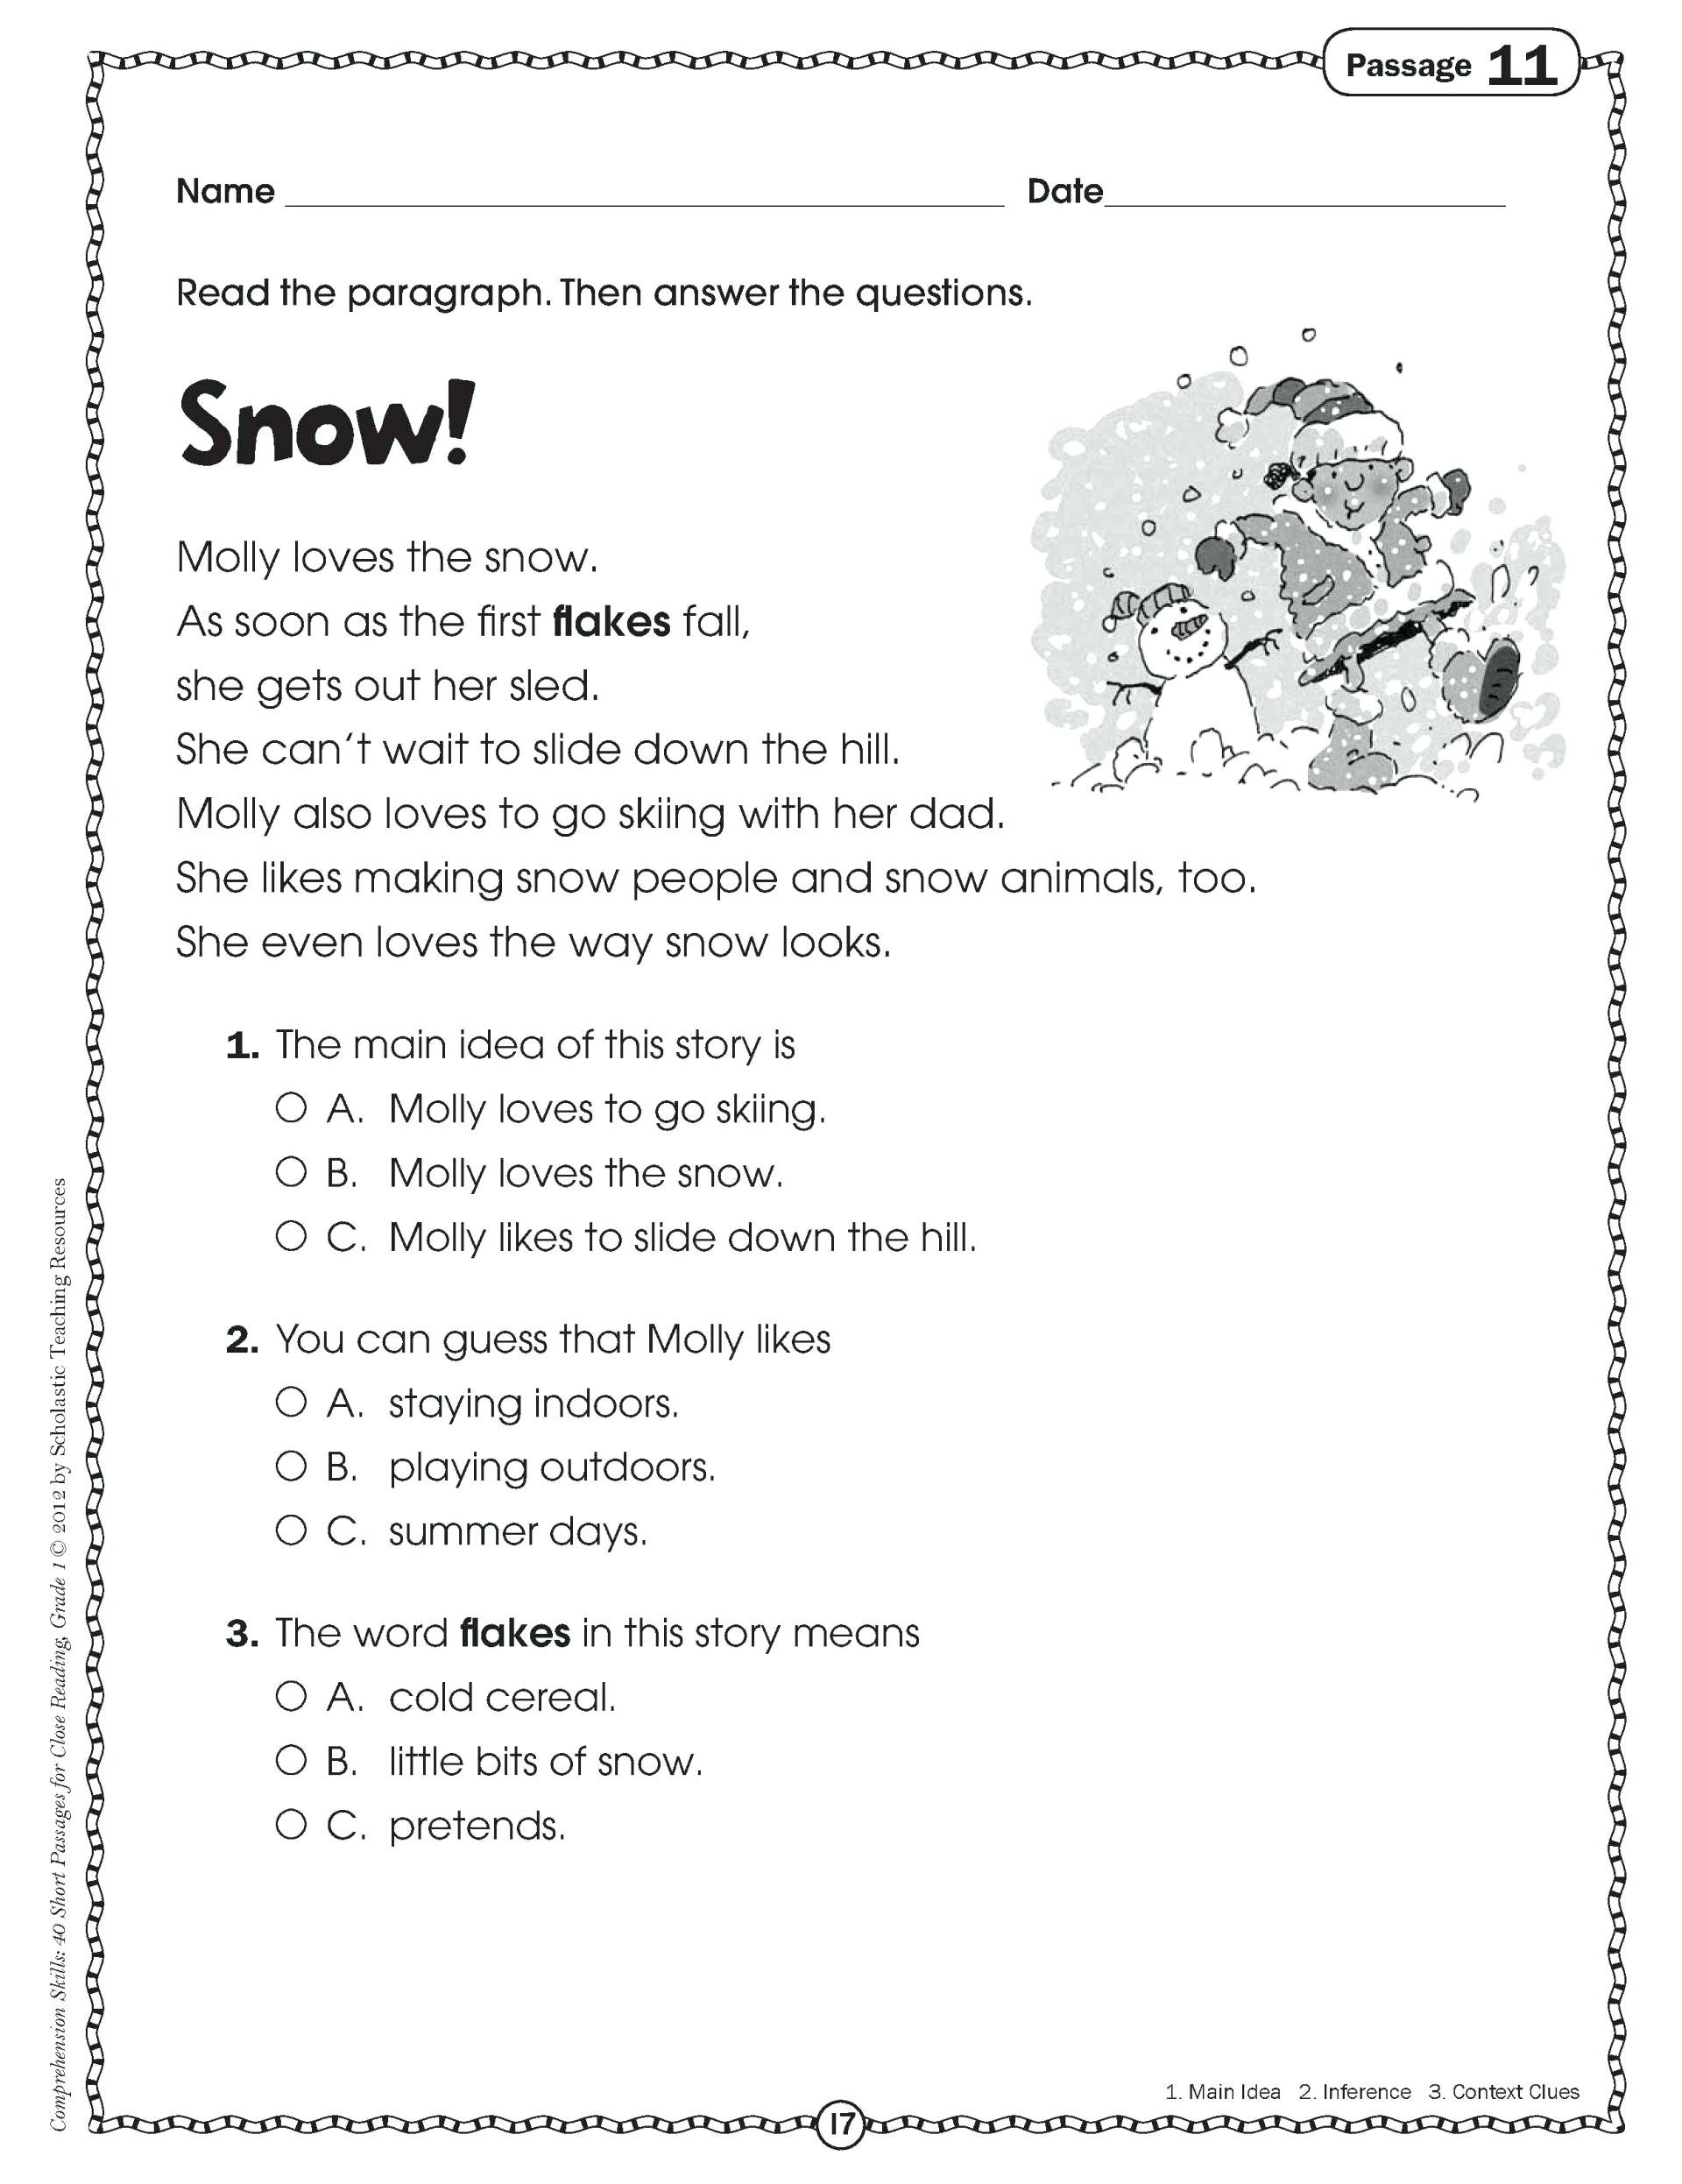 Preschool Reading Comprehension Worksheets 5 Preschool Worksheets Free Printables Reading Prehension